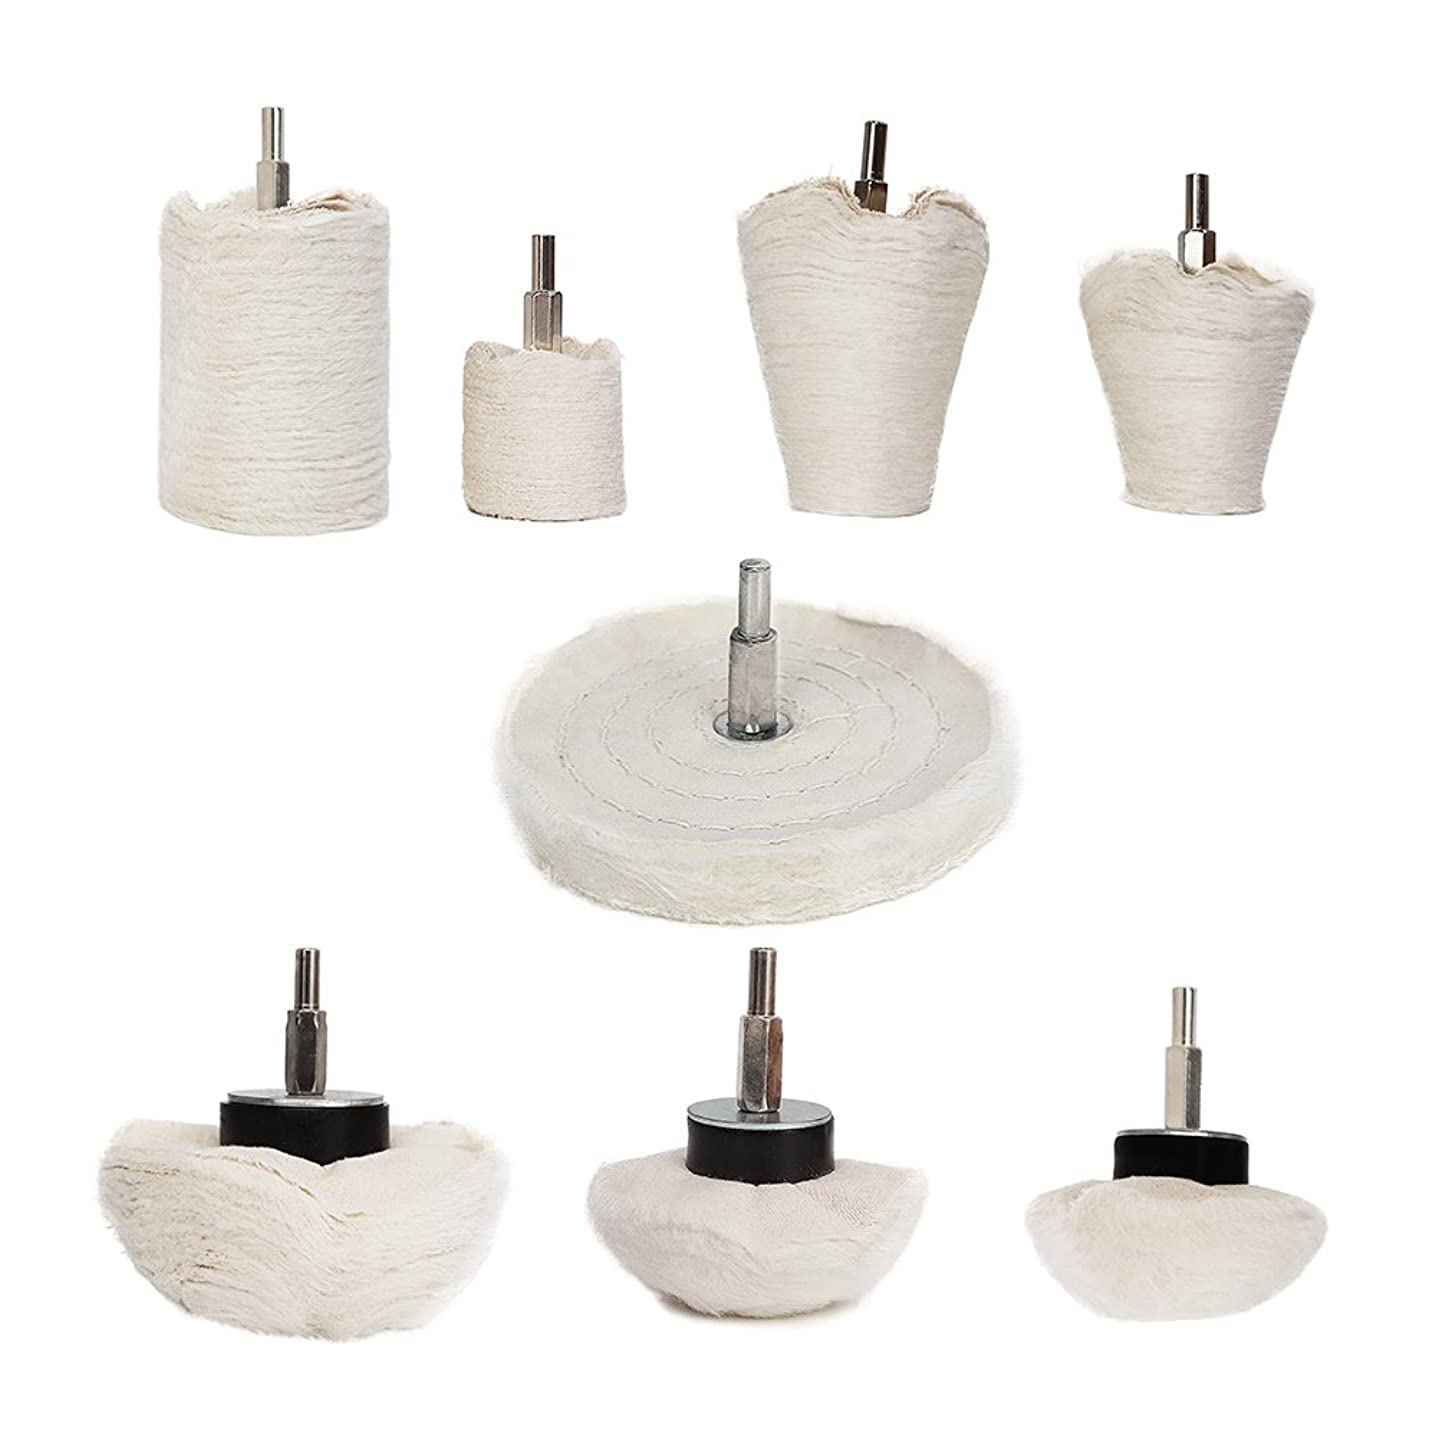 Buffing Polishing Wheel For Drill - 8Pcs White Flannelette Polishing Mop Wheel Cone/Column/Mushroom/T-shaped Wheel Grinding Head With 1/4 Handle For Manifold / aluminum / stainless steel / chrome etc.